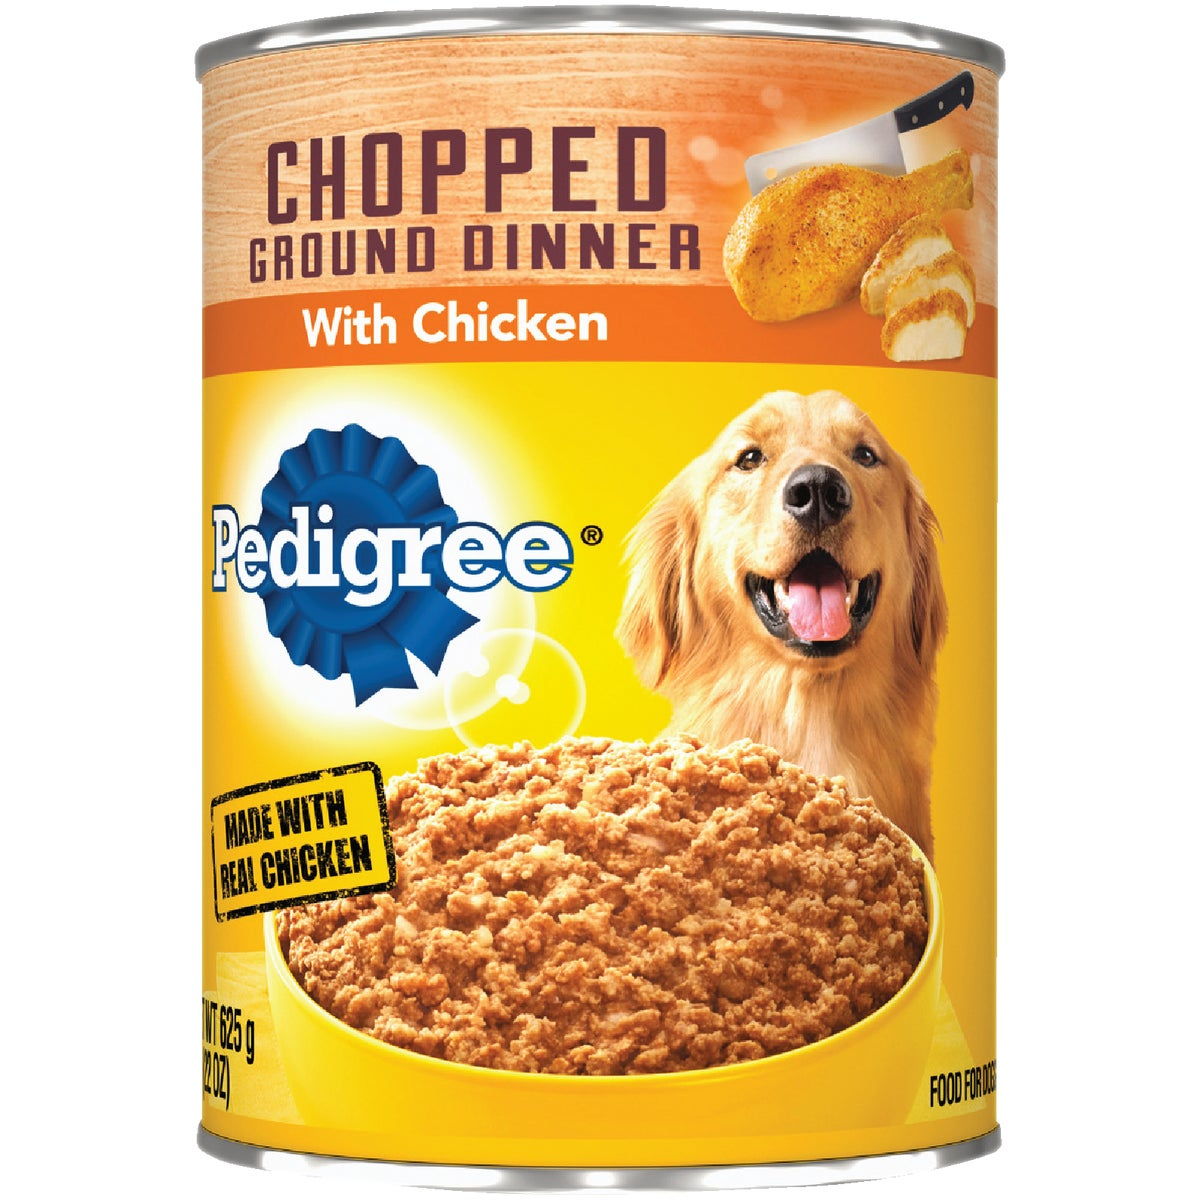 22OZ CHOP CHICK DOG FOOD